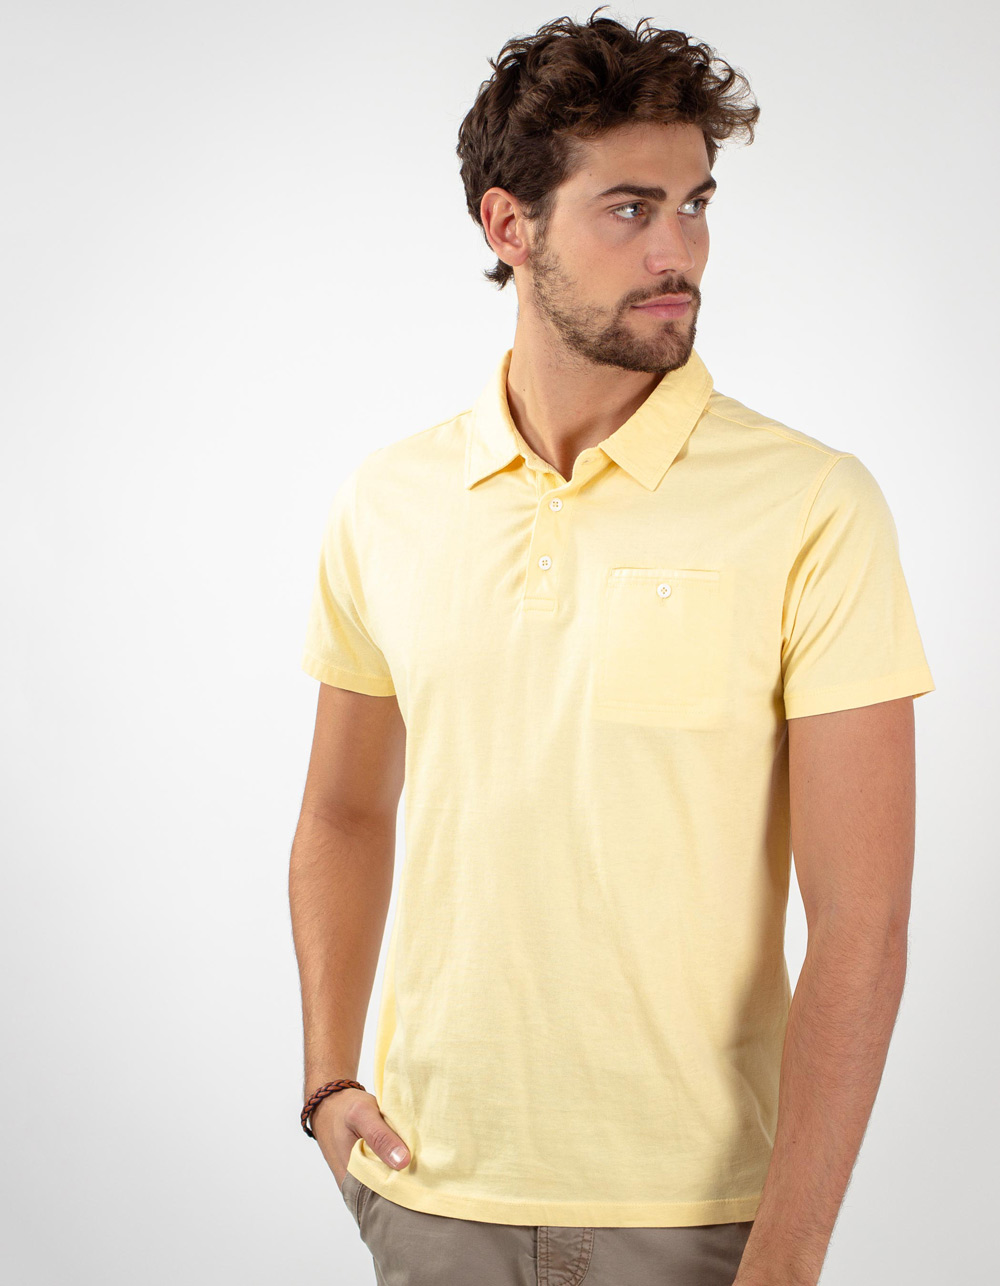 Yellow pocket polo shirt